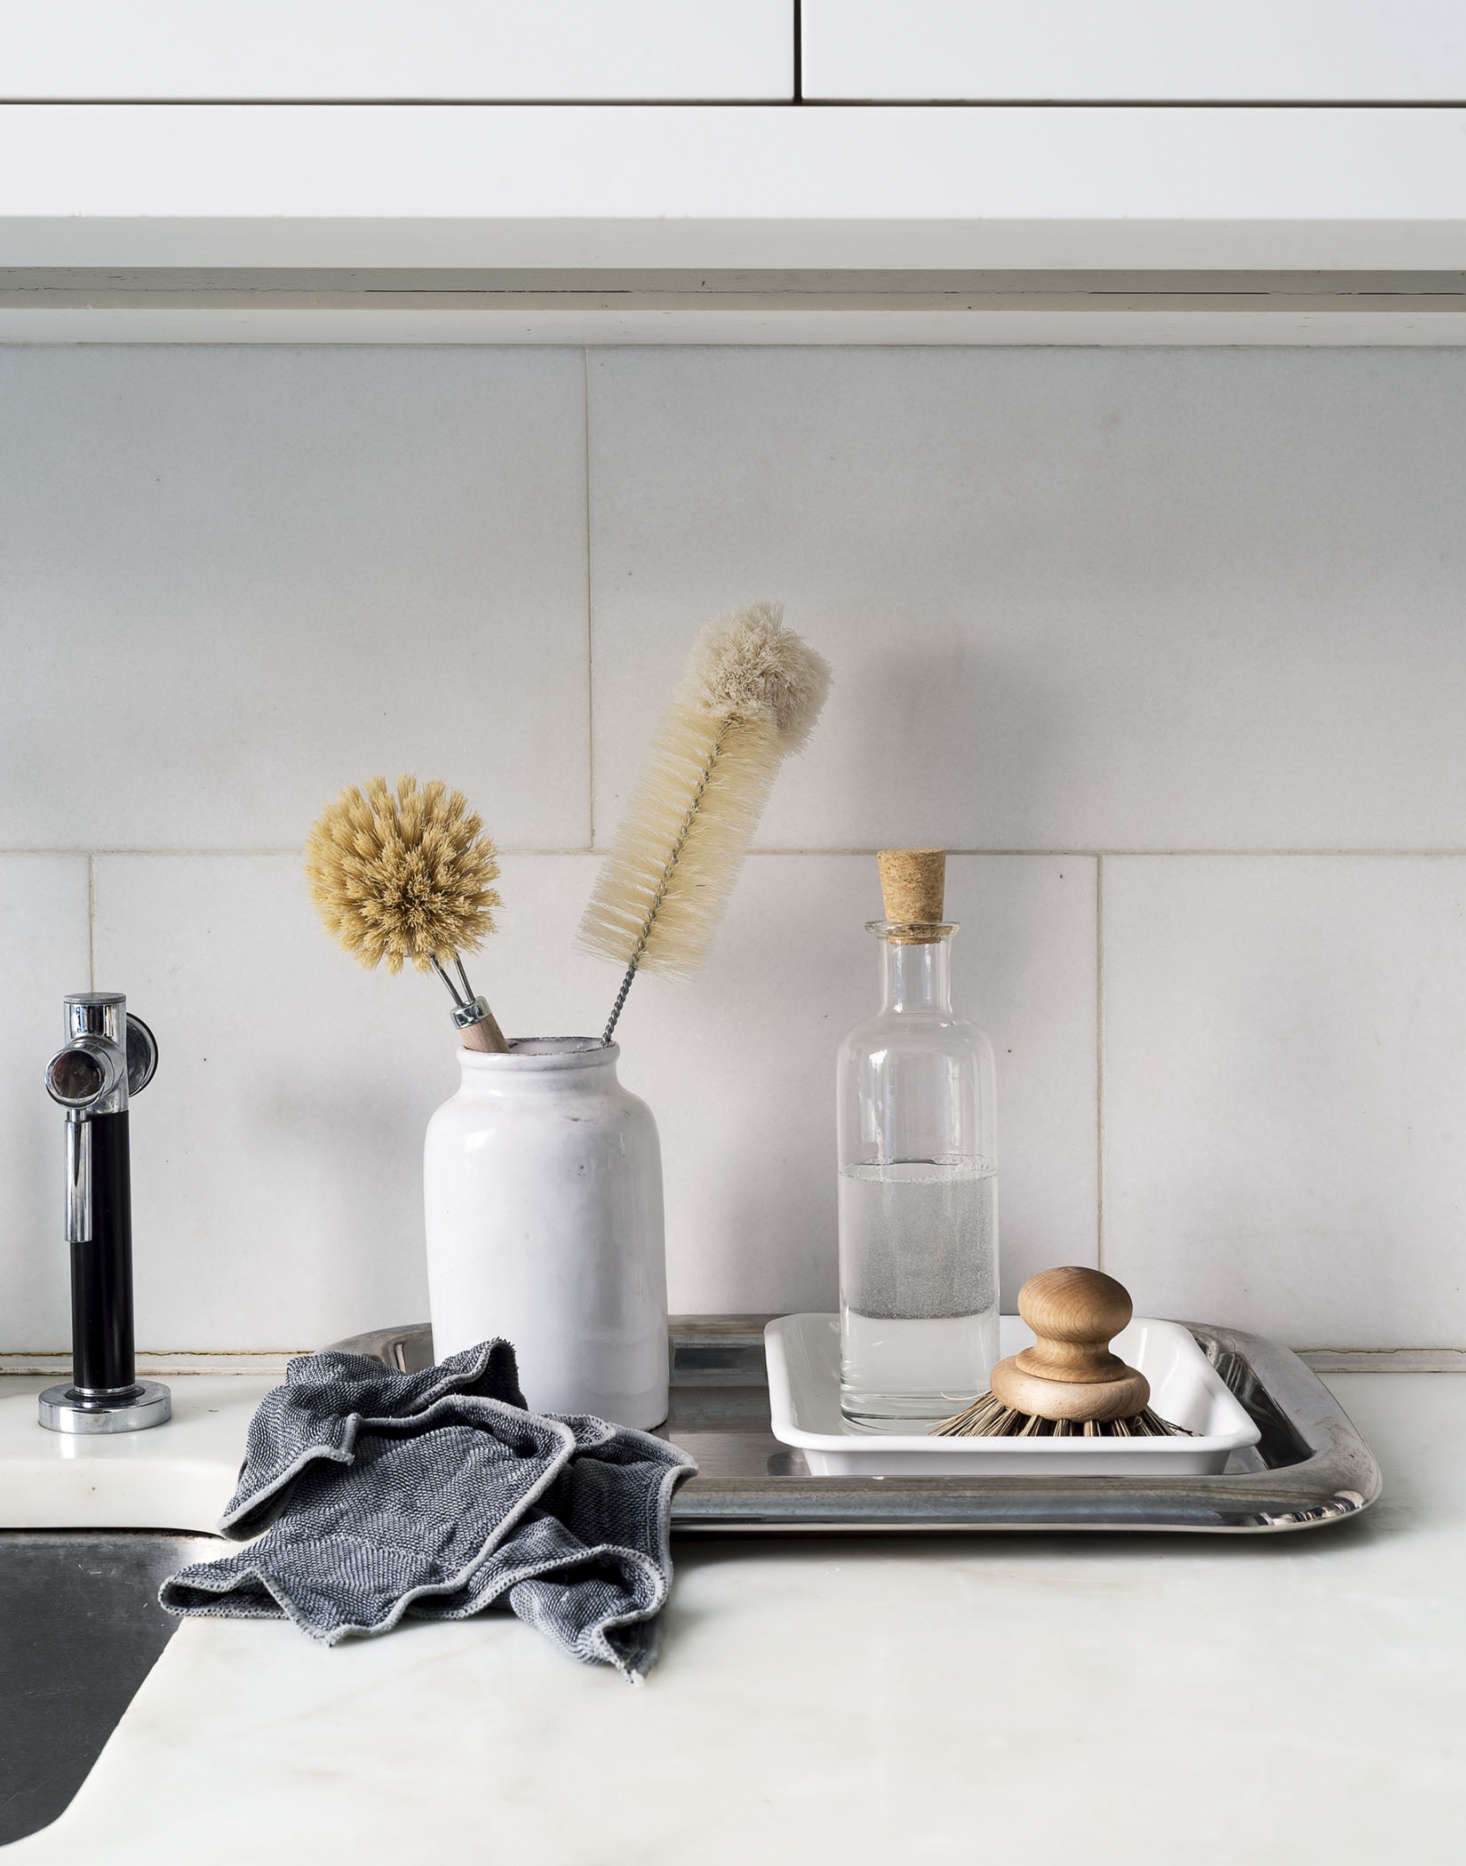 Photograph By Matthew Williams Styling Alexa Hotz For Remodelista The Organized Home